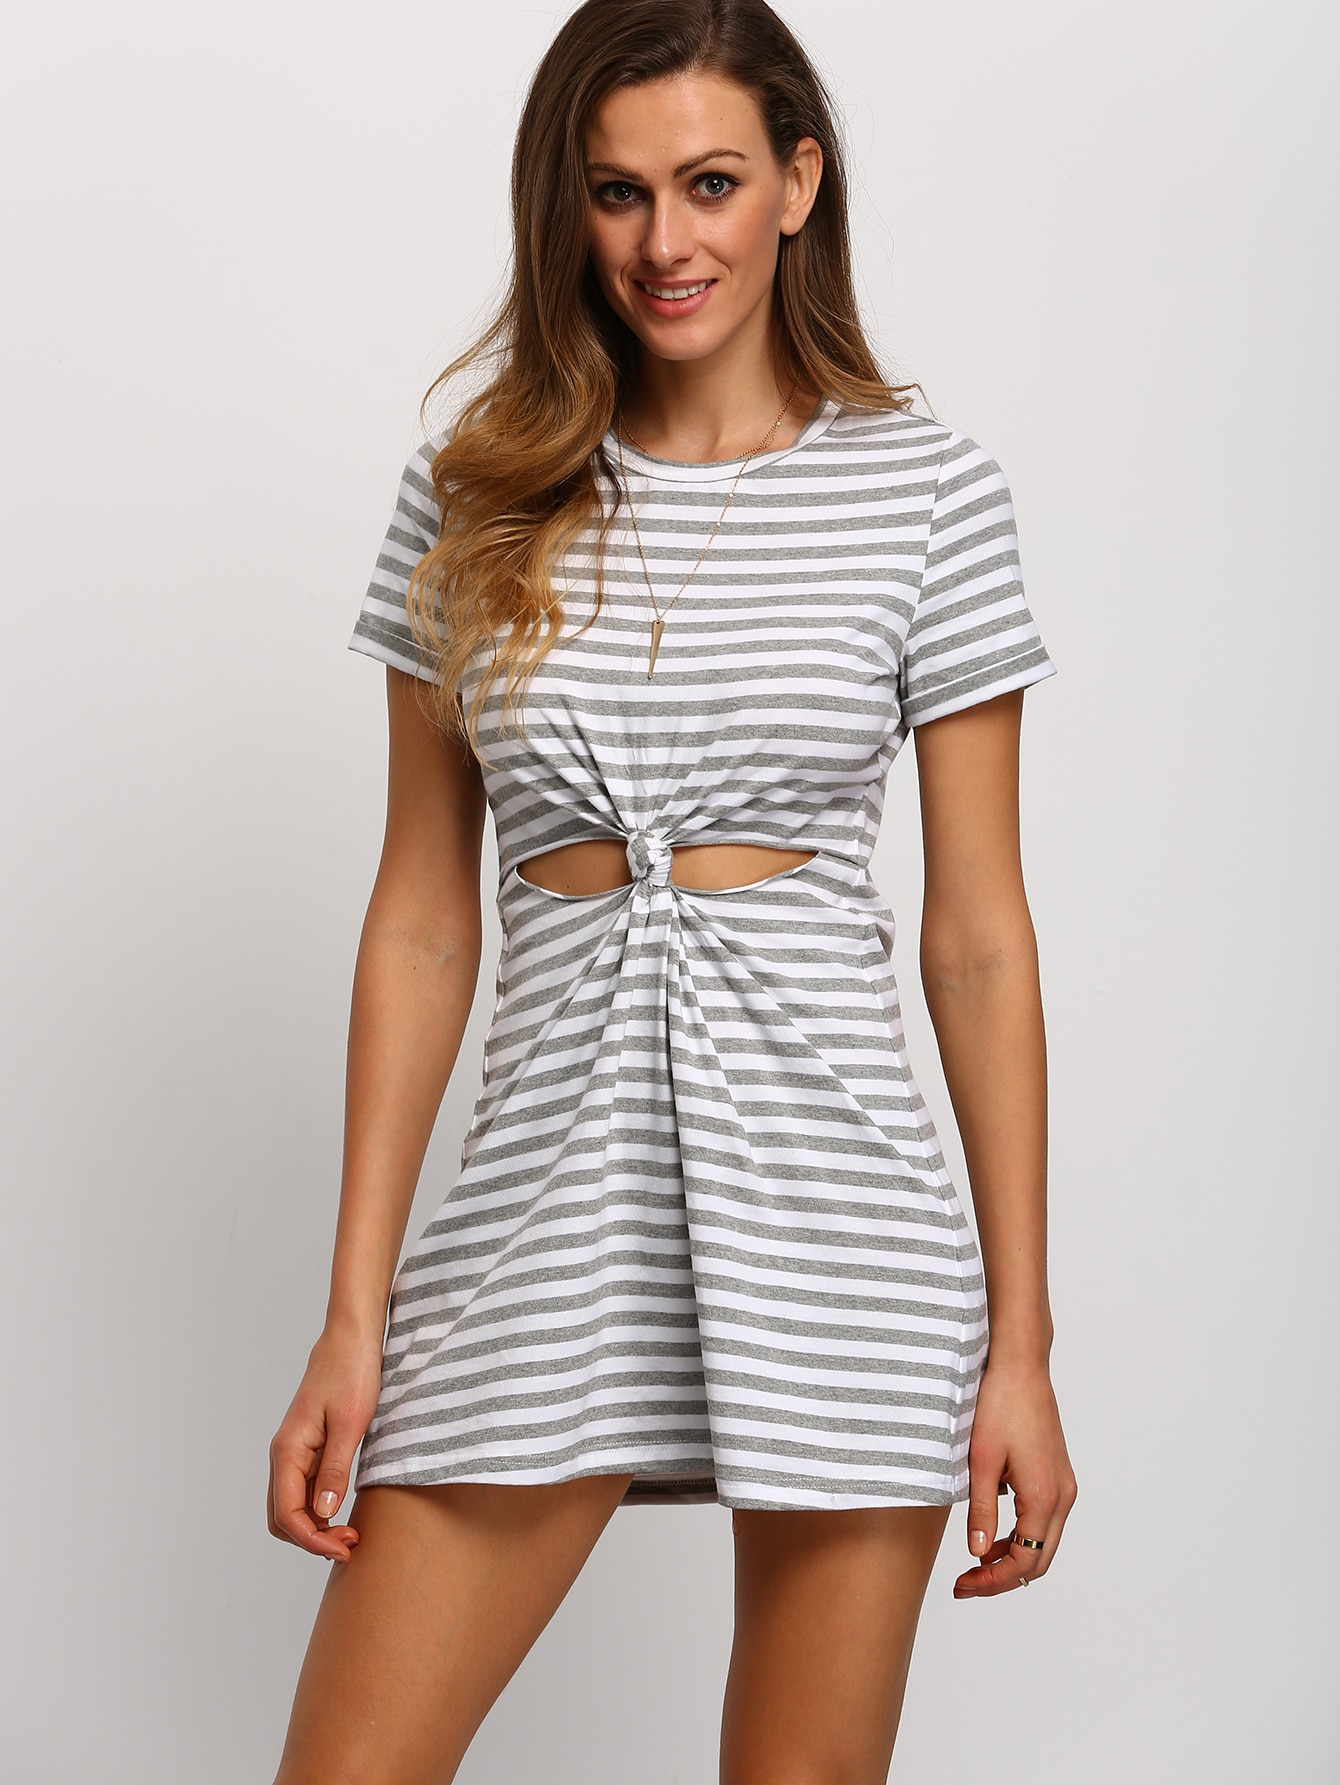 Gray Stripe Dress